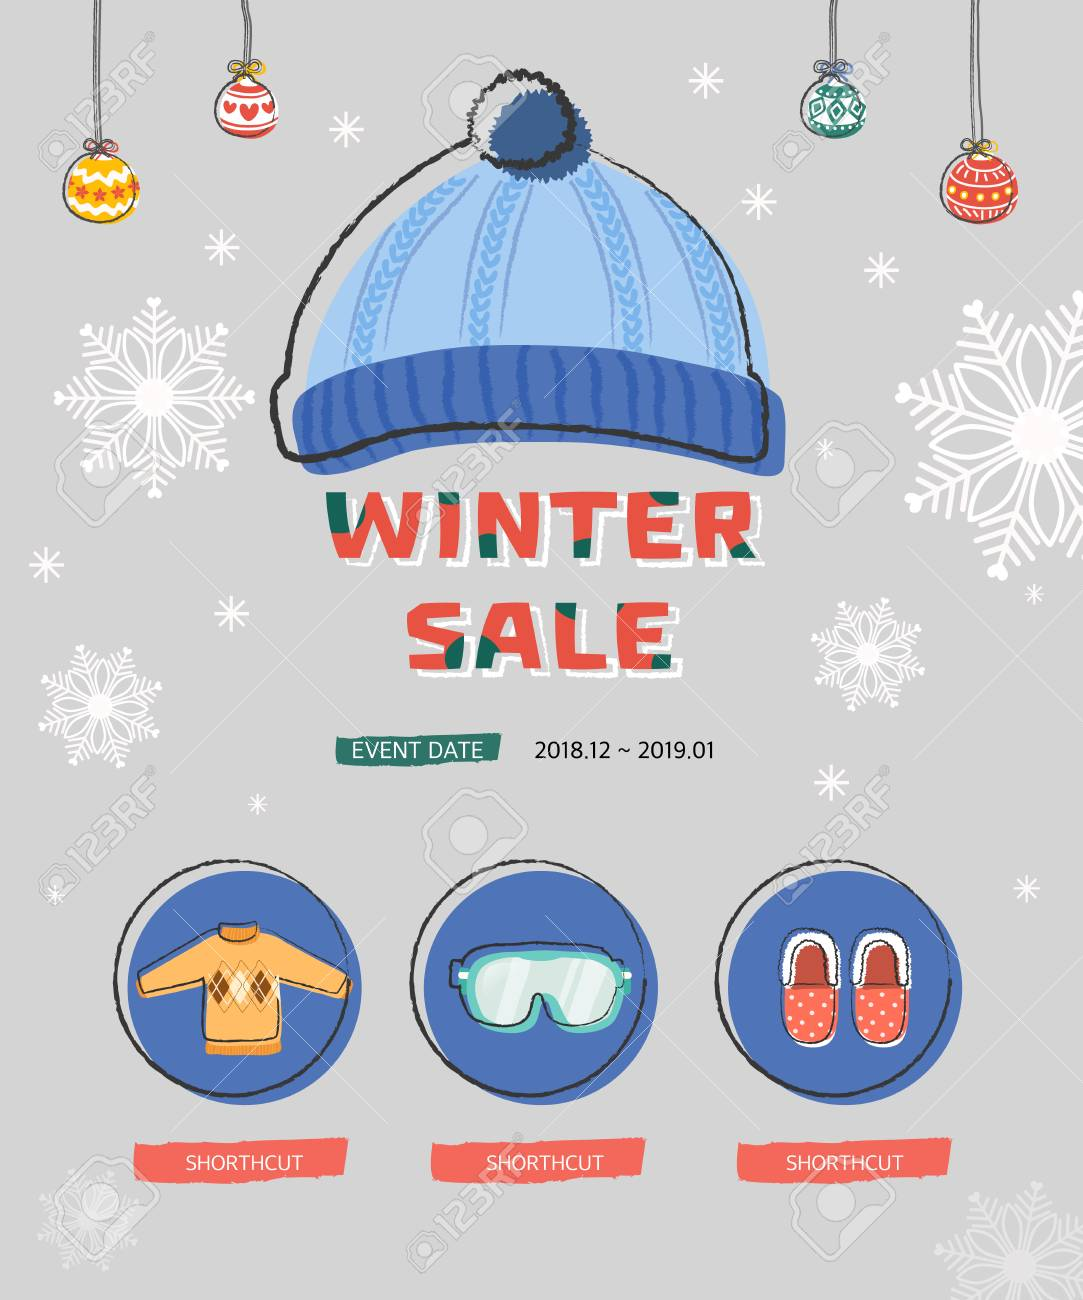 vector winter sale poster design template or background creative business promotional vector snowy winter season happy new year